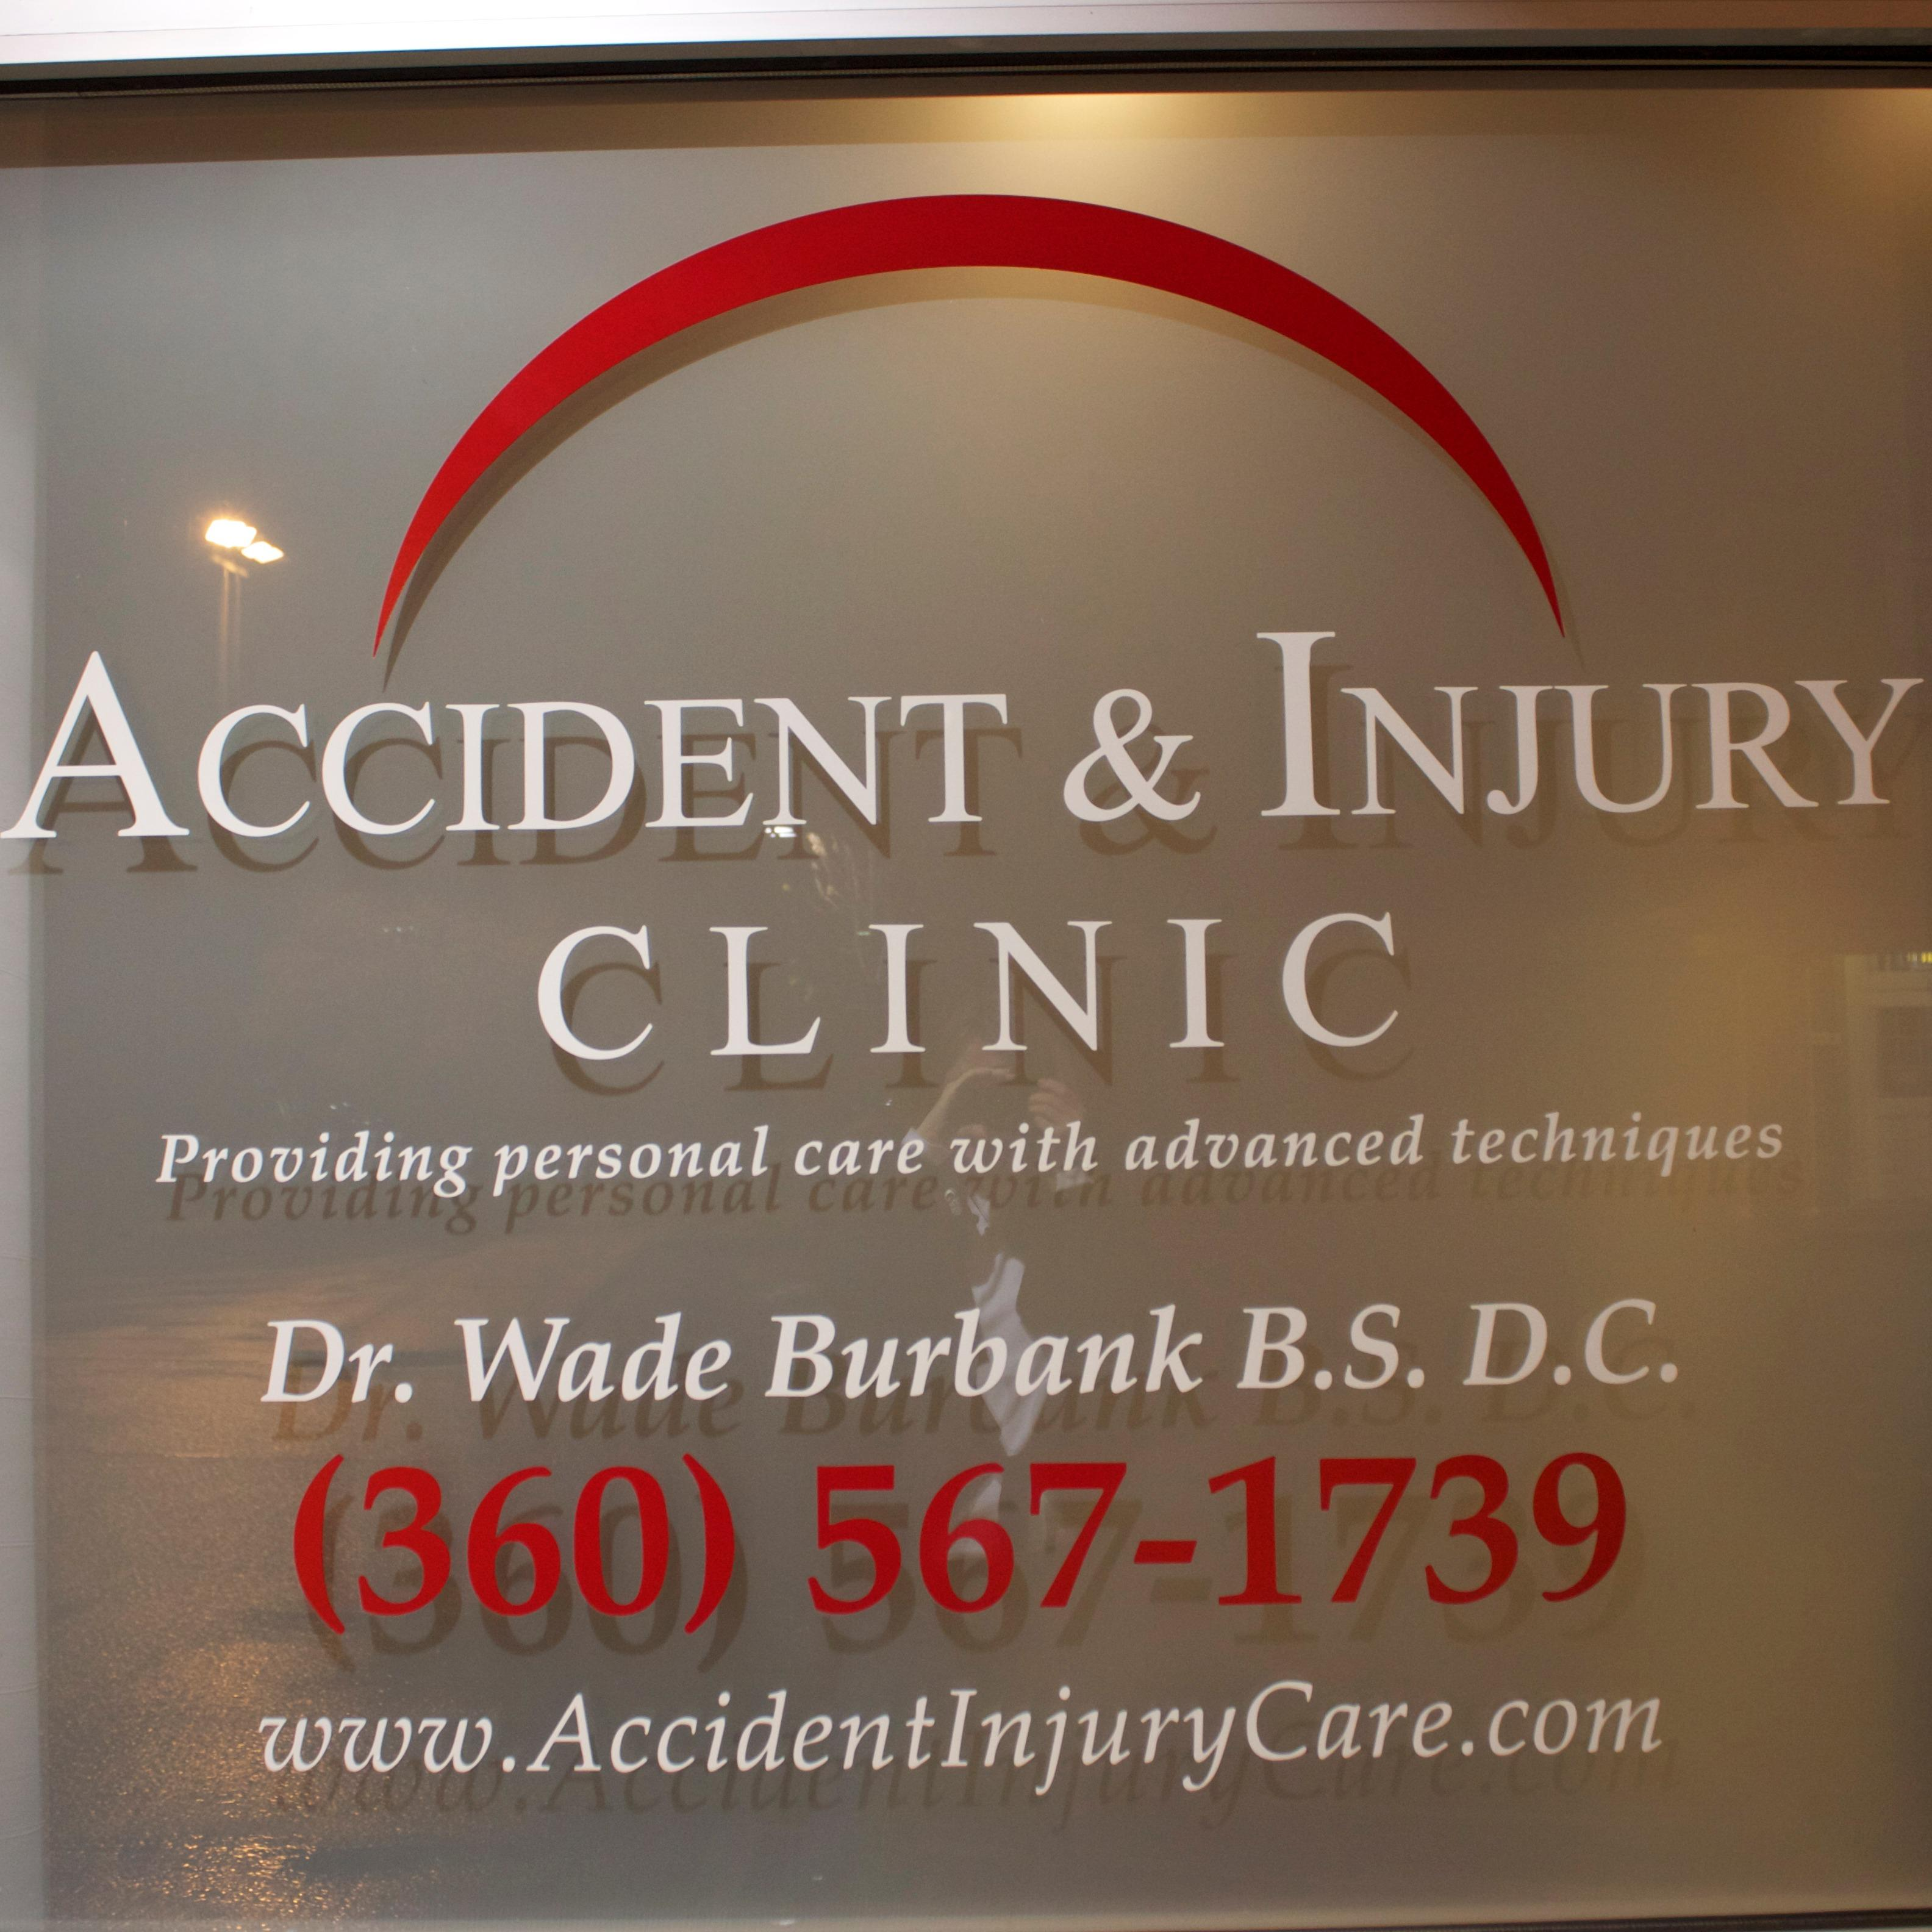 Chiropractor in WA Vancouver 98662 Dr Wade Burbank Chiropractor 6403 NE 117th Ave Ste 108  (360)567-1739